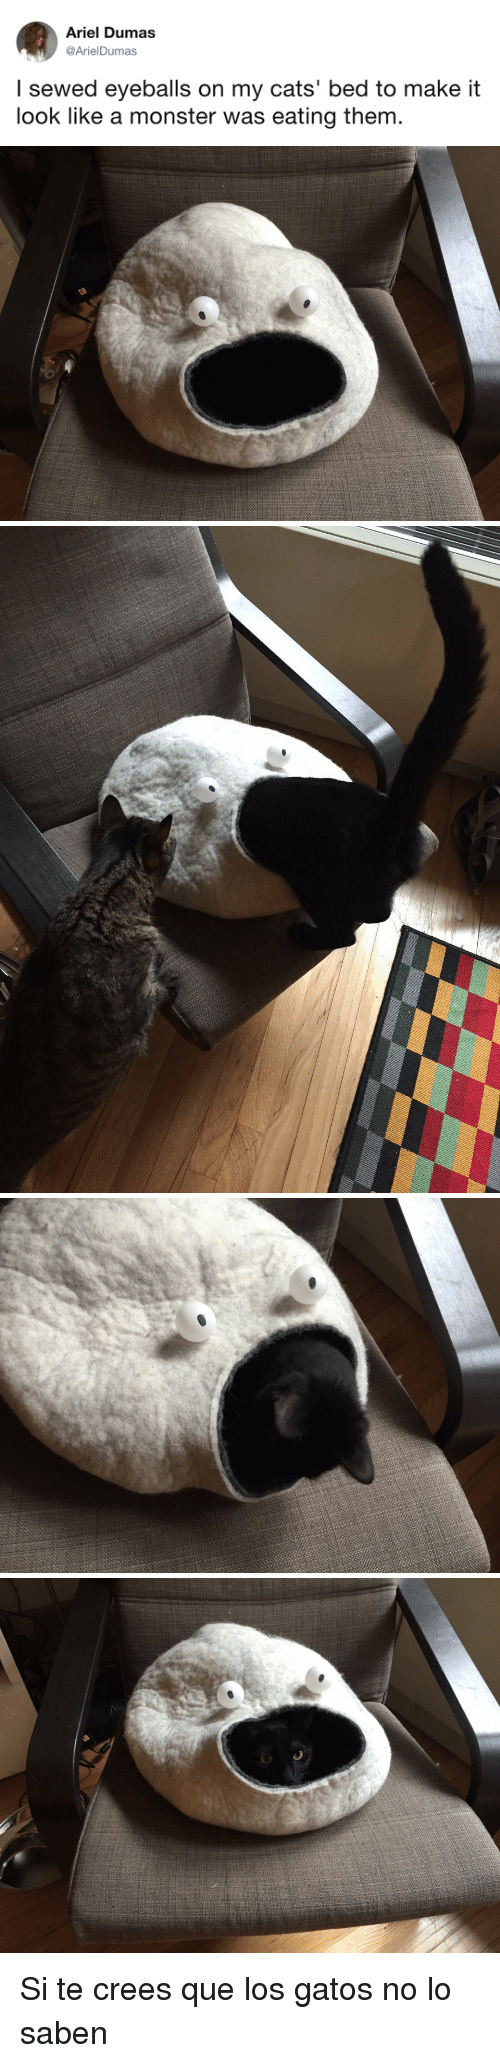 Ariel, Cats, and Monster: Ariel Dumas  @ArielDumas  I sewed eyeballs on my cats' bed to make it  look like a monster was eating them <p>Si te crees que los gatos no lo saben</p>